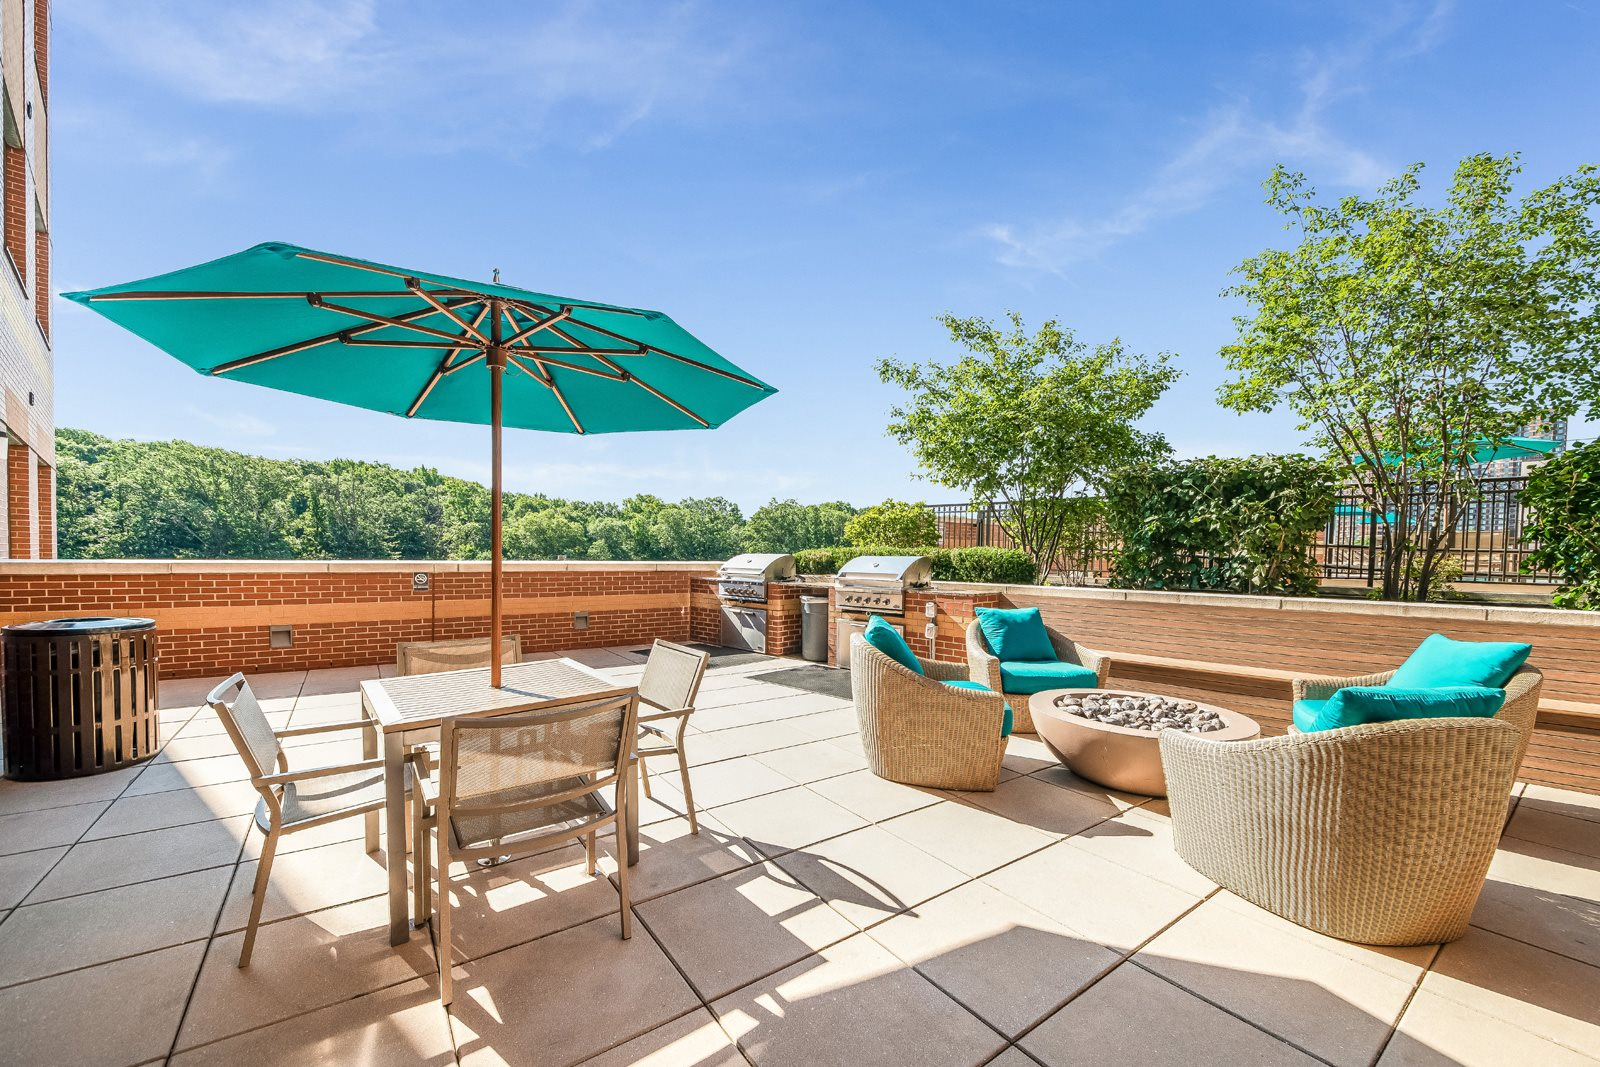 BBQ Grill Area with Fire Pit at Twenty50 by Windsor, 2050 Central Road, Fort Lee